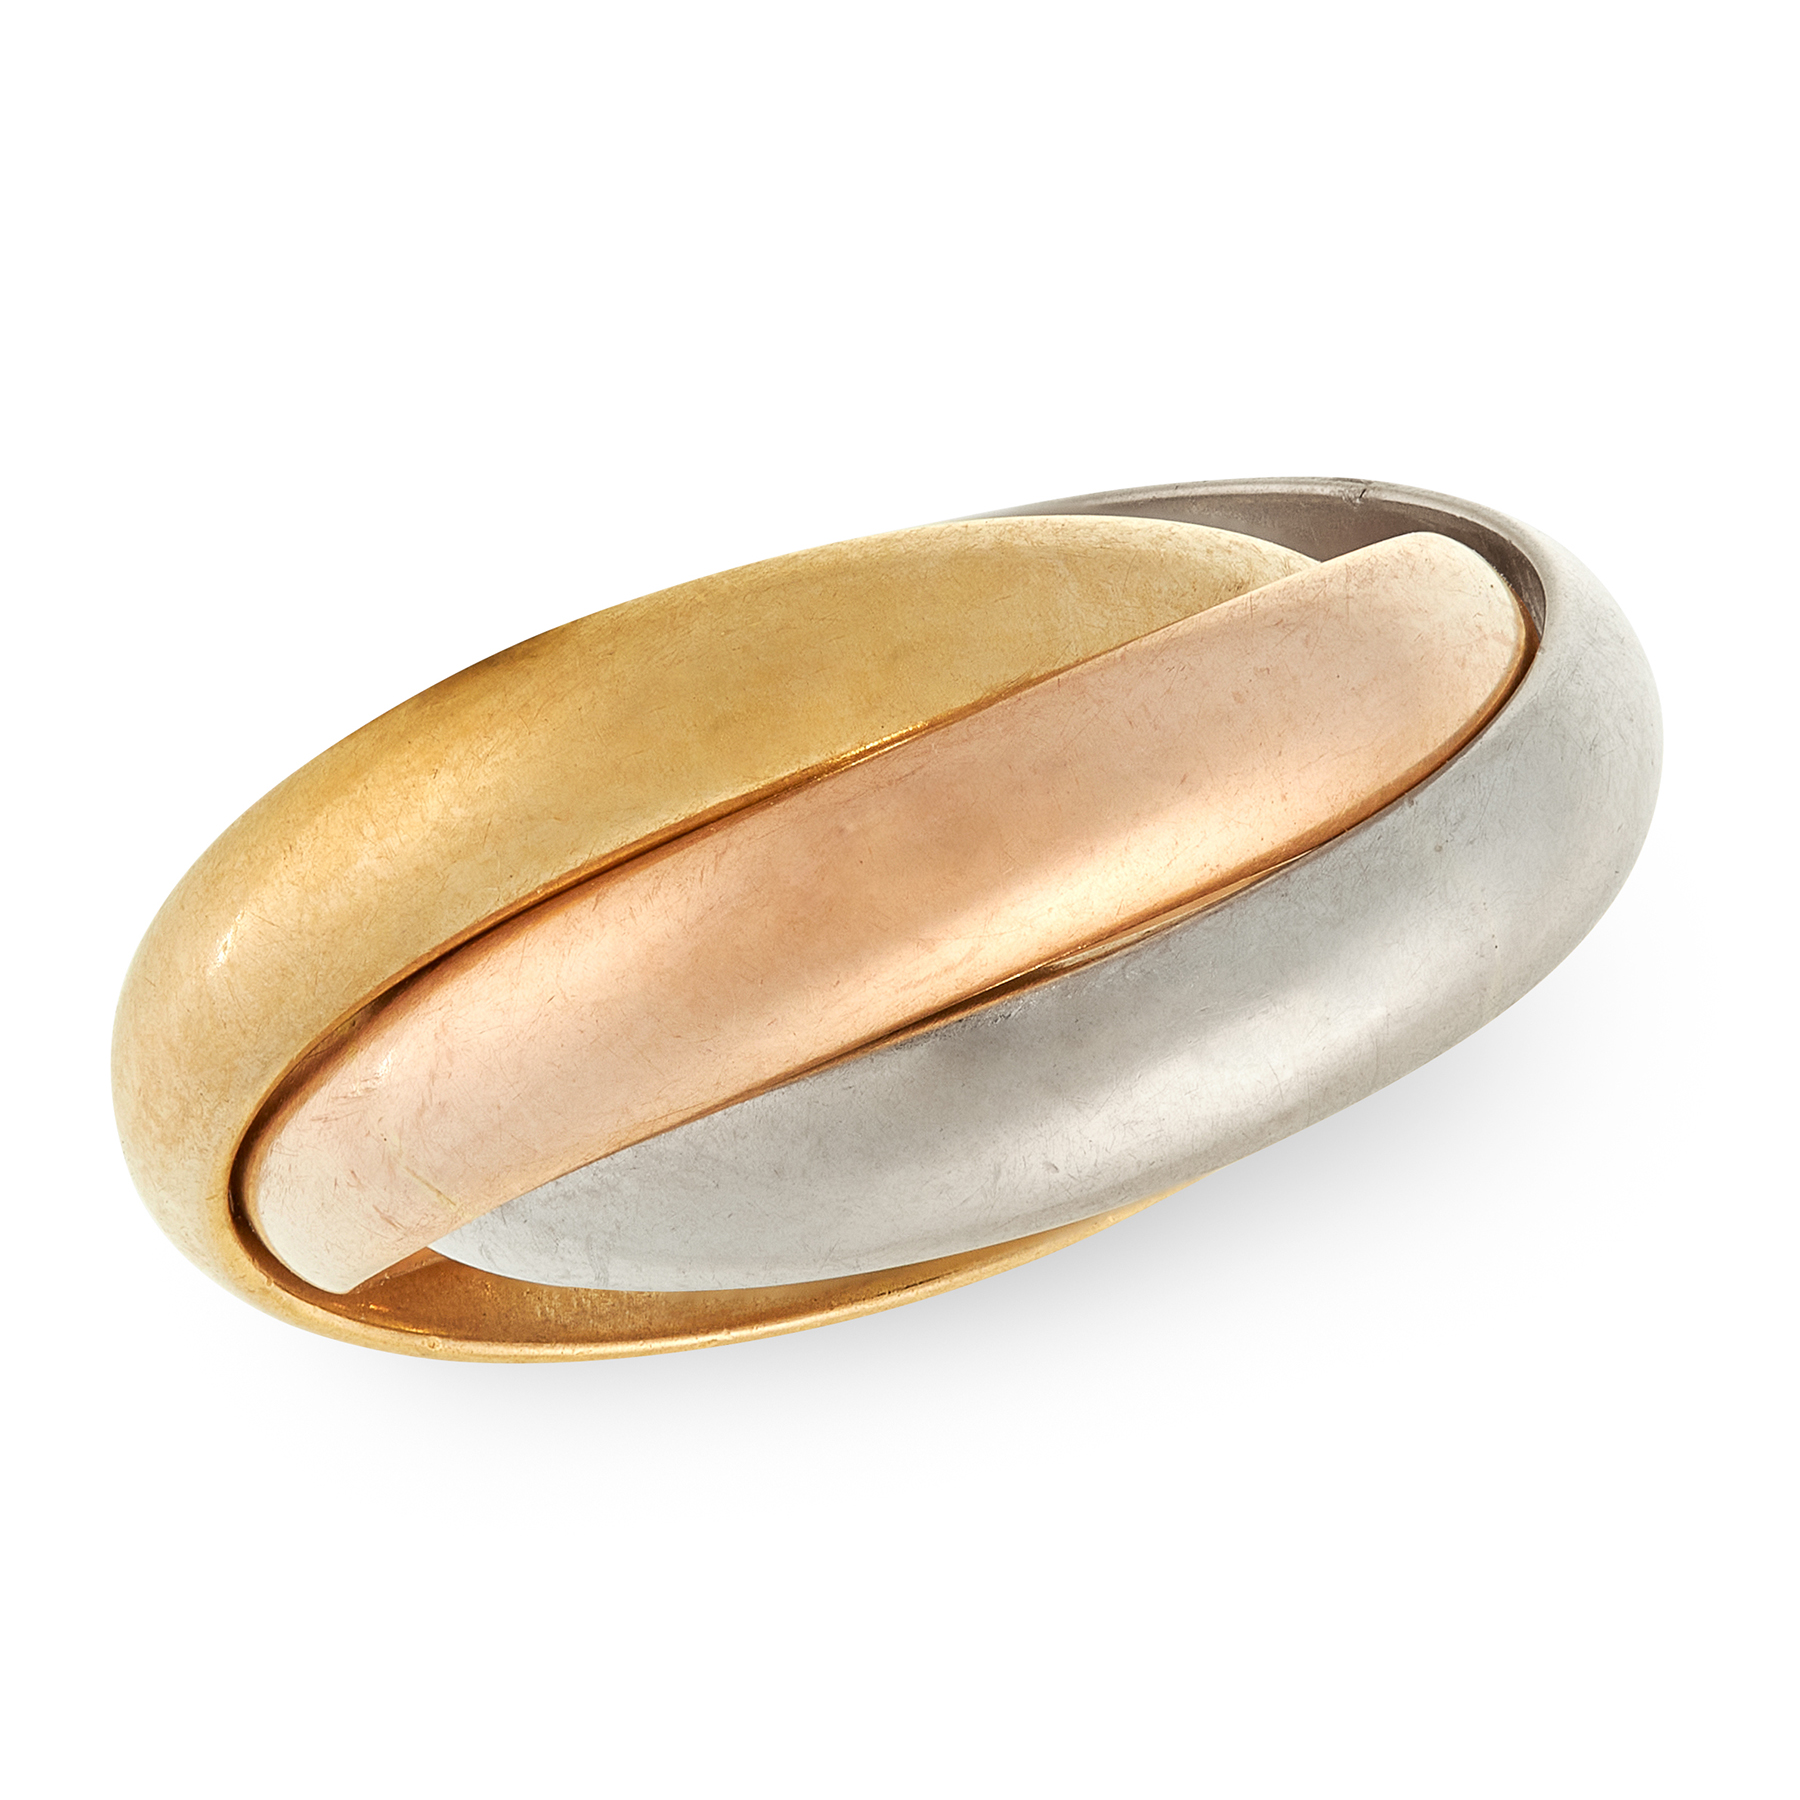 A TRINITY DE CARTIER RING, CARTIER in 18ct white, yellow and rose gold, comprising of three